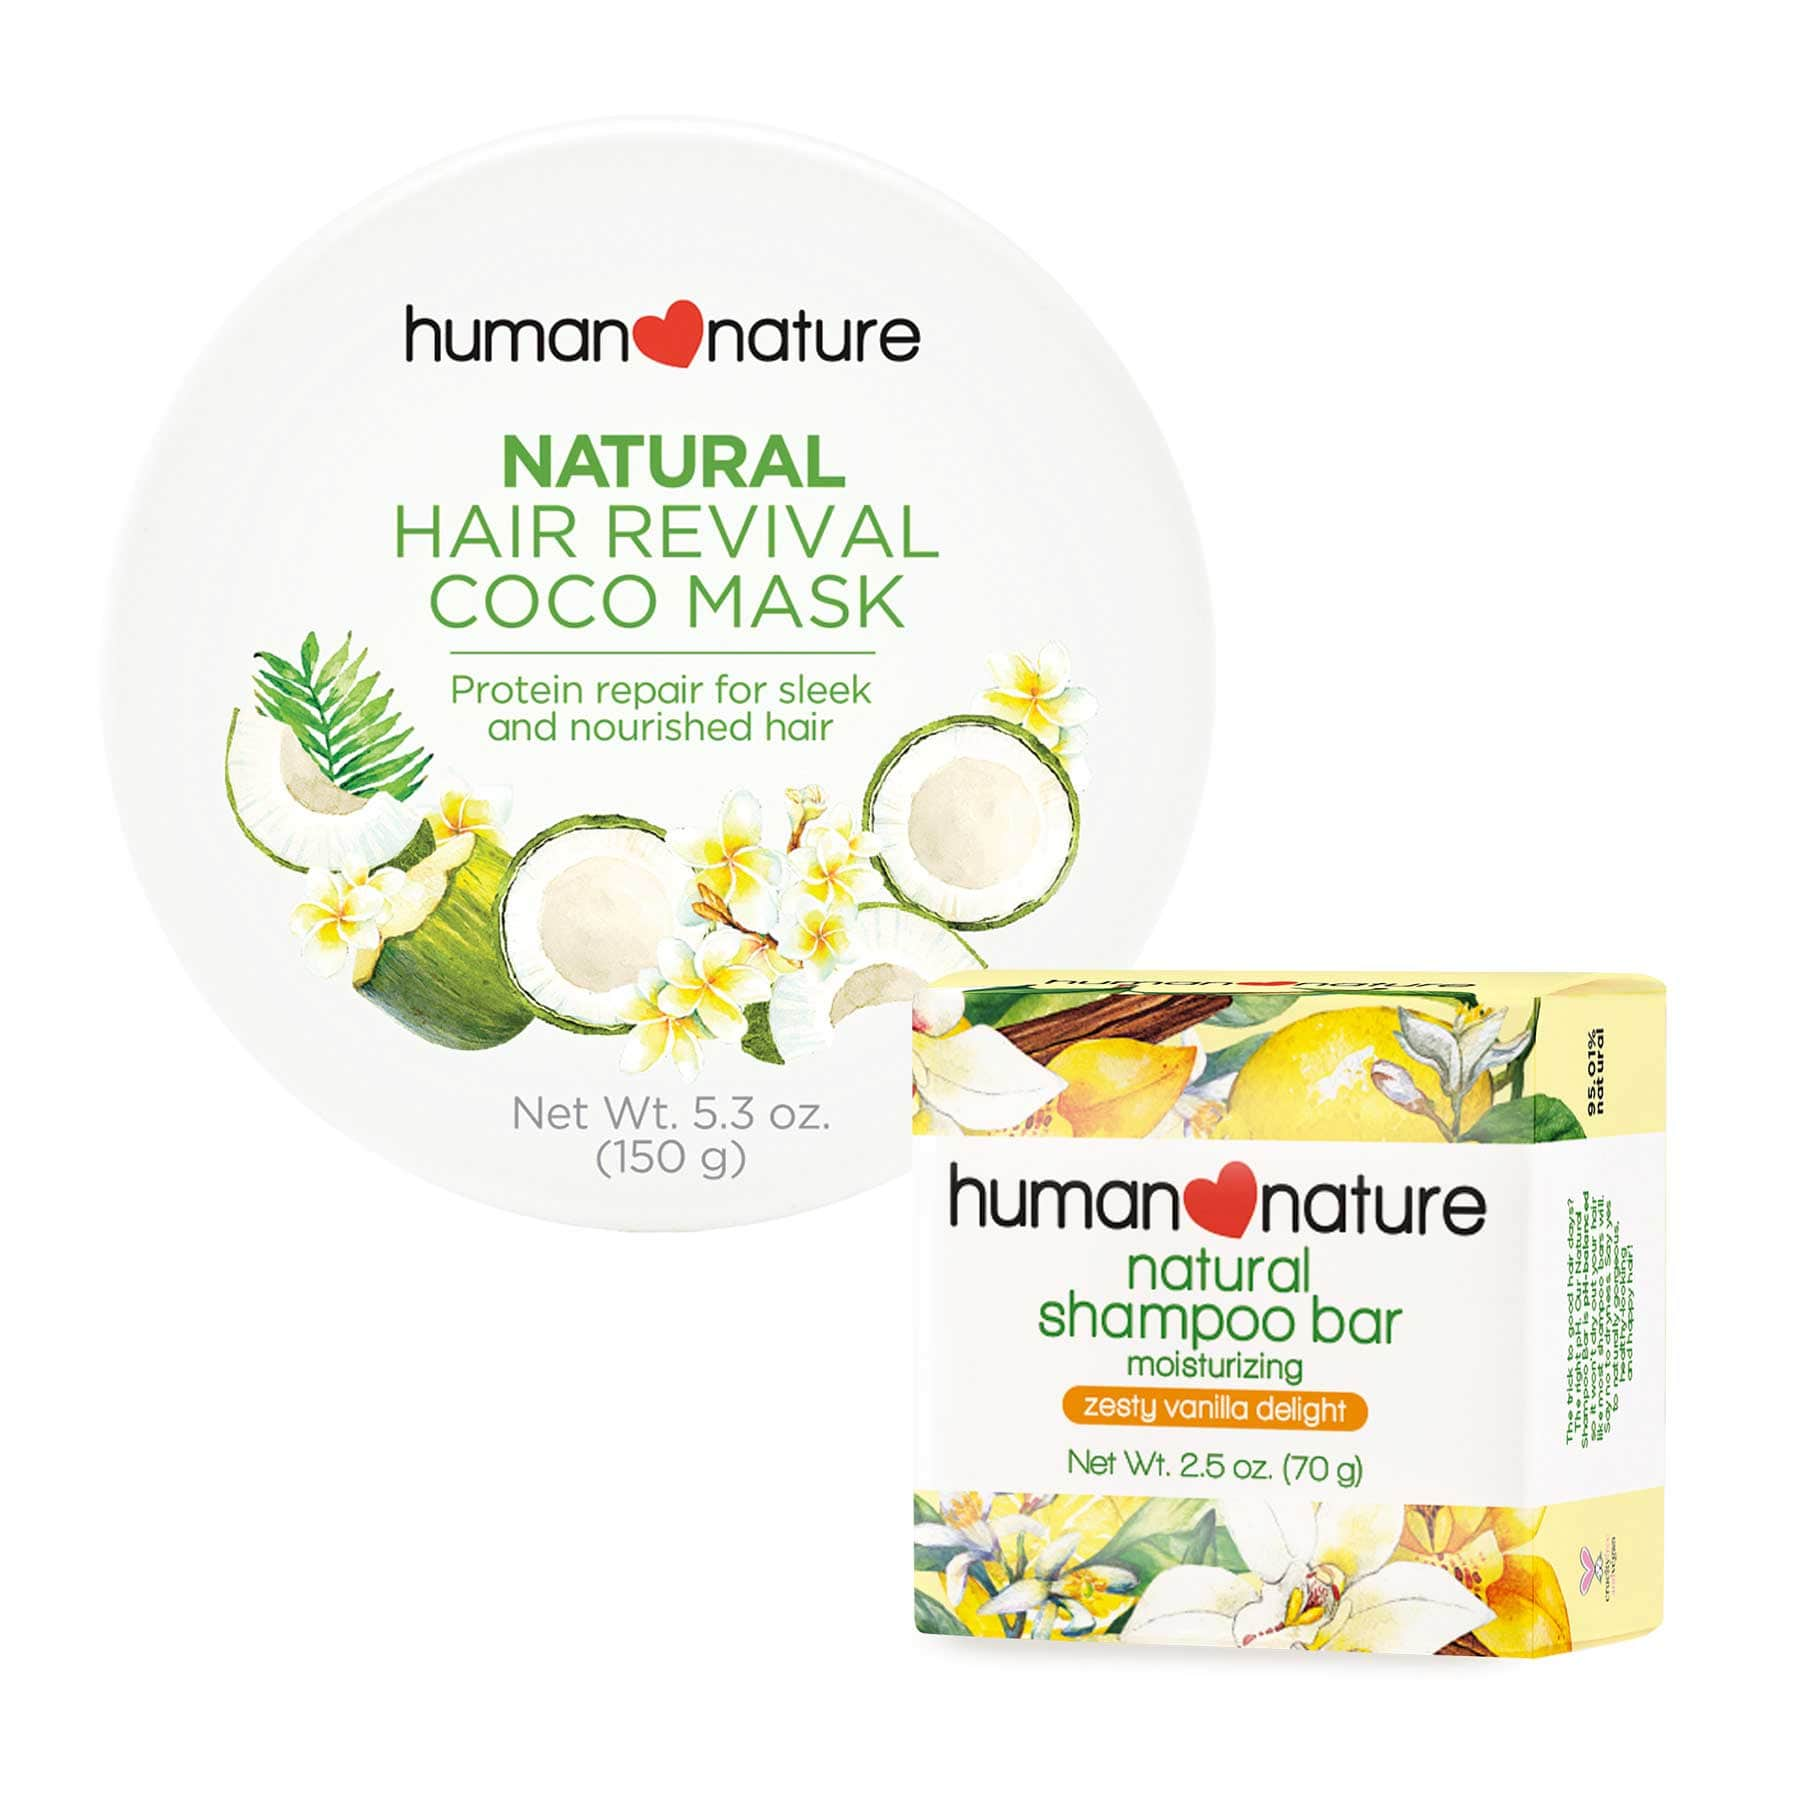 GET P20 OFF when you buy Natural Shampoo Bar with Natural Hair Revival Coco Mask - Top-Season Essentials